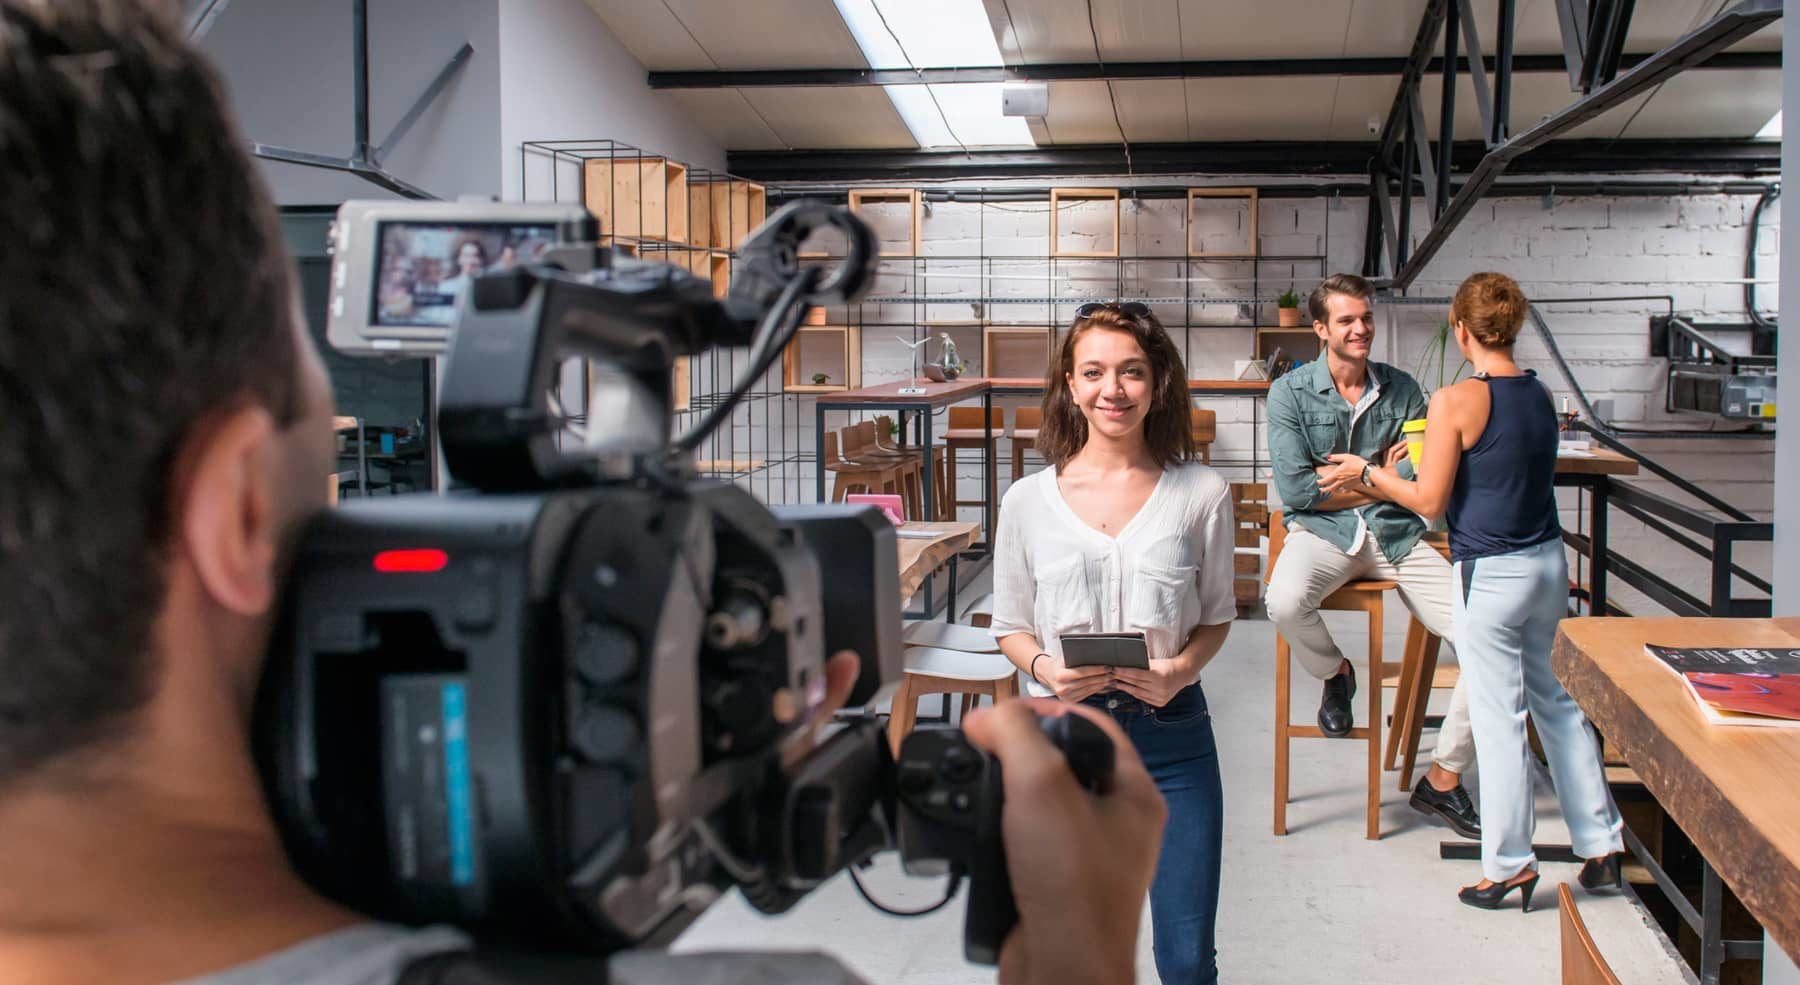 videoproduction services